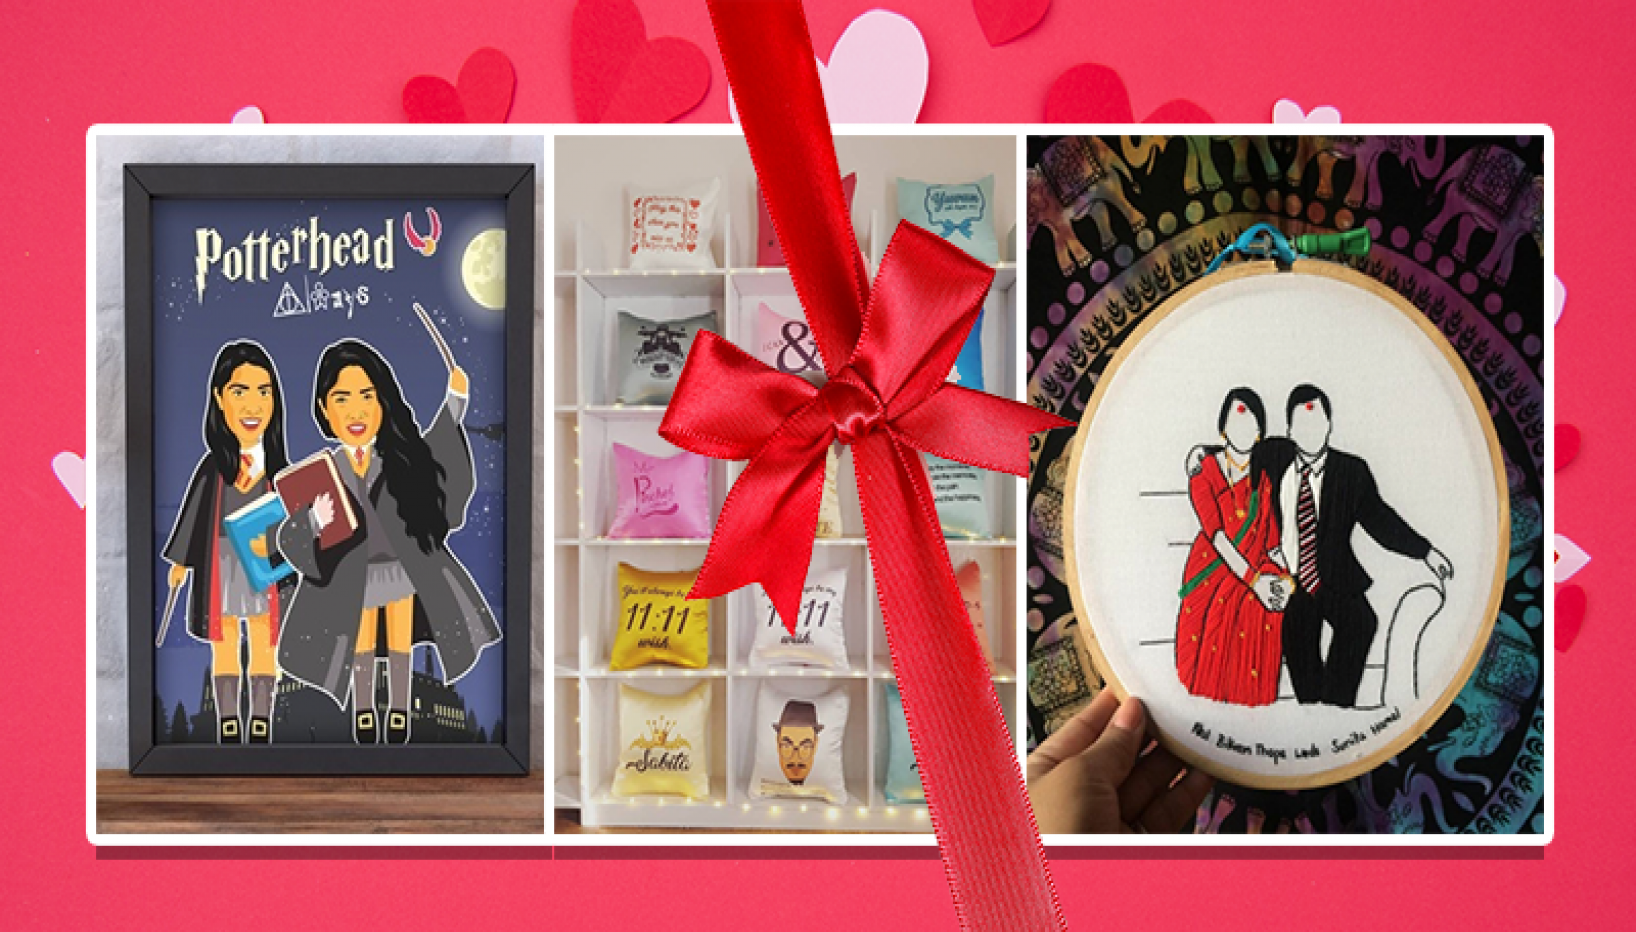 Here Are 5 Personalized Valentine's Gift Ideas That Won't Make Your Wallet Cry